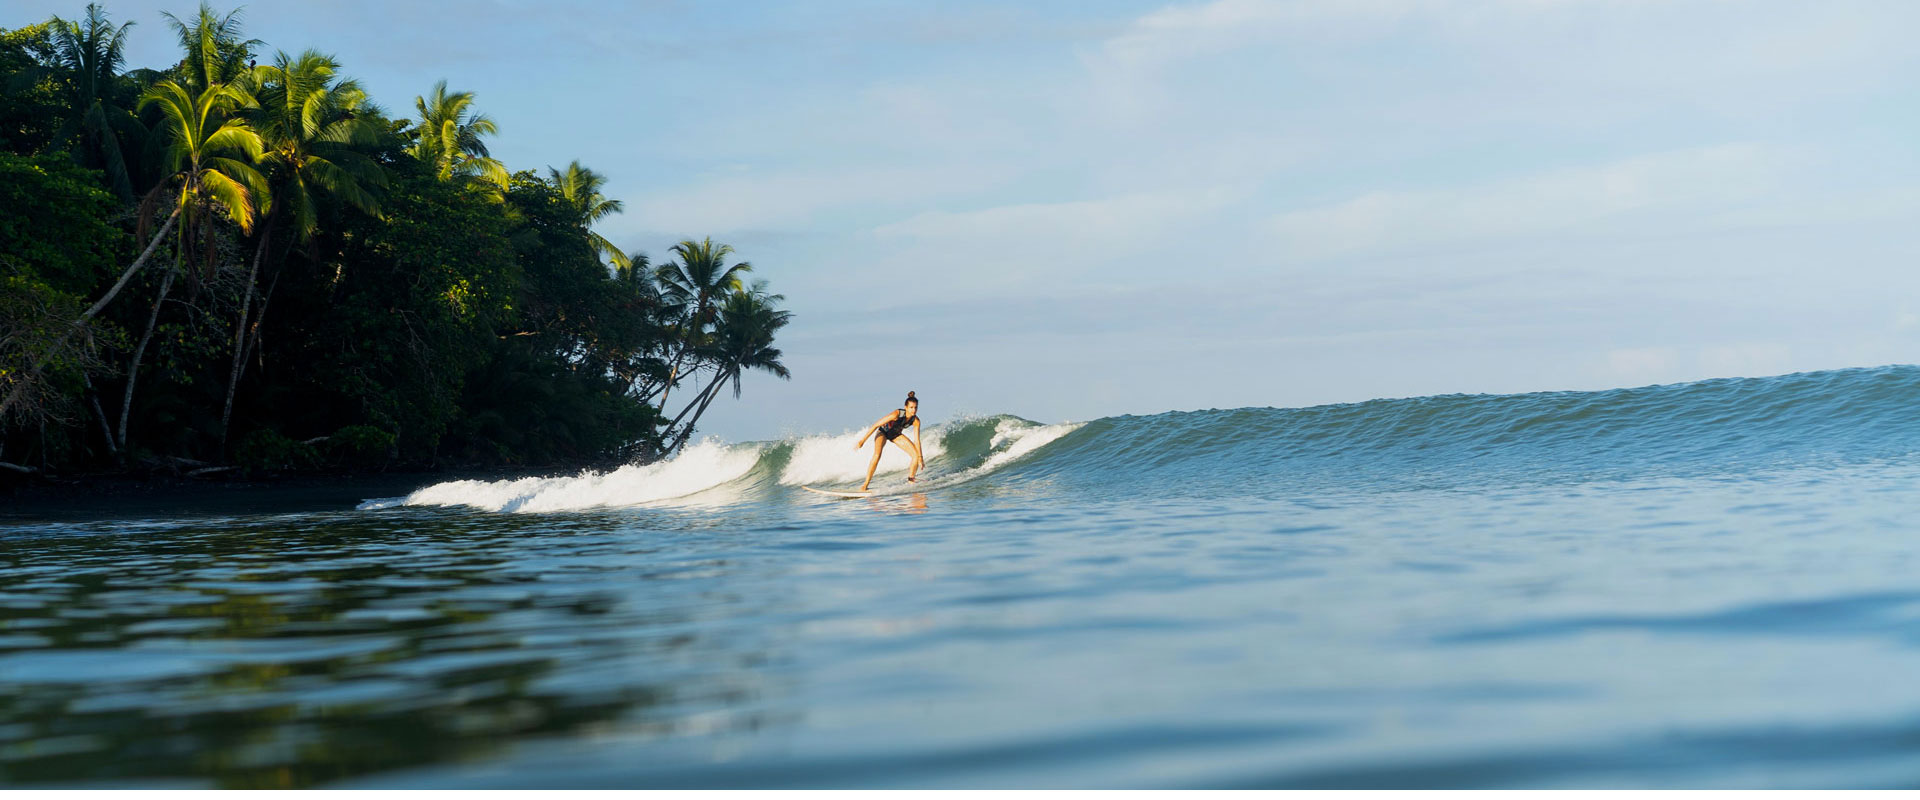 learn-to-surf-in-costa-rica